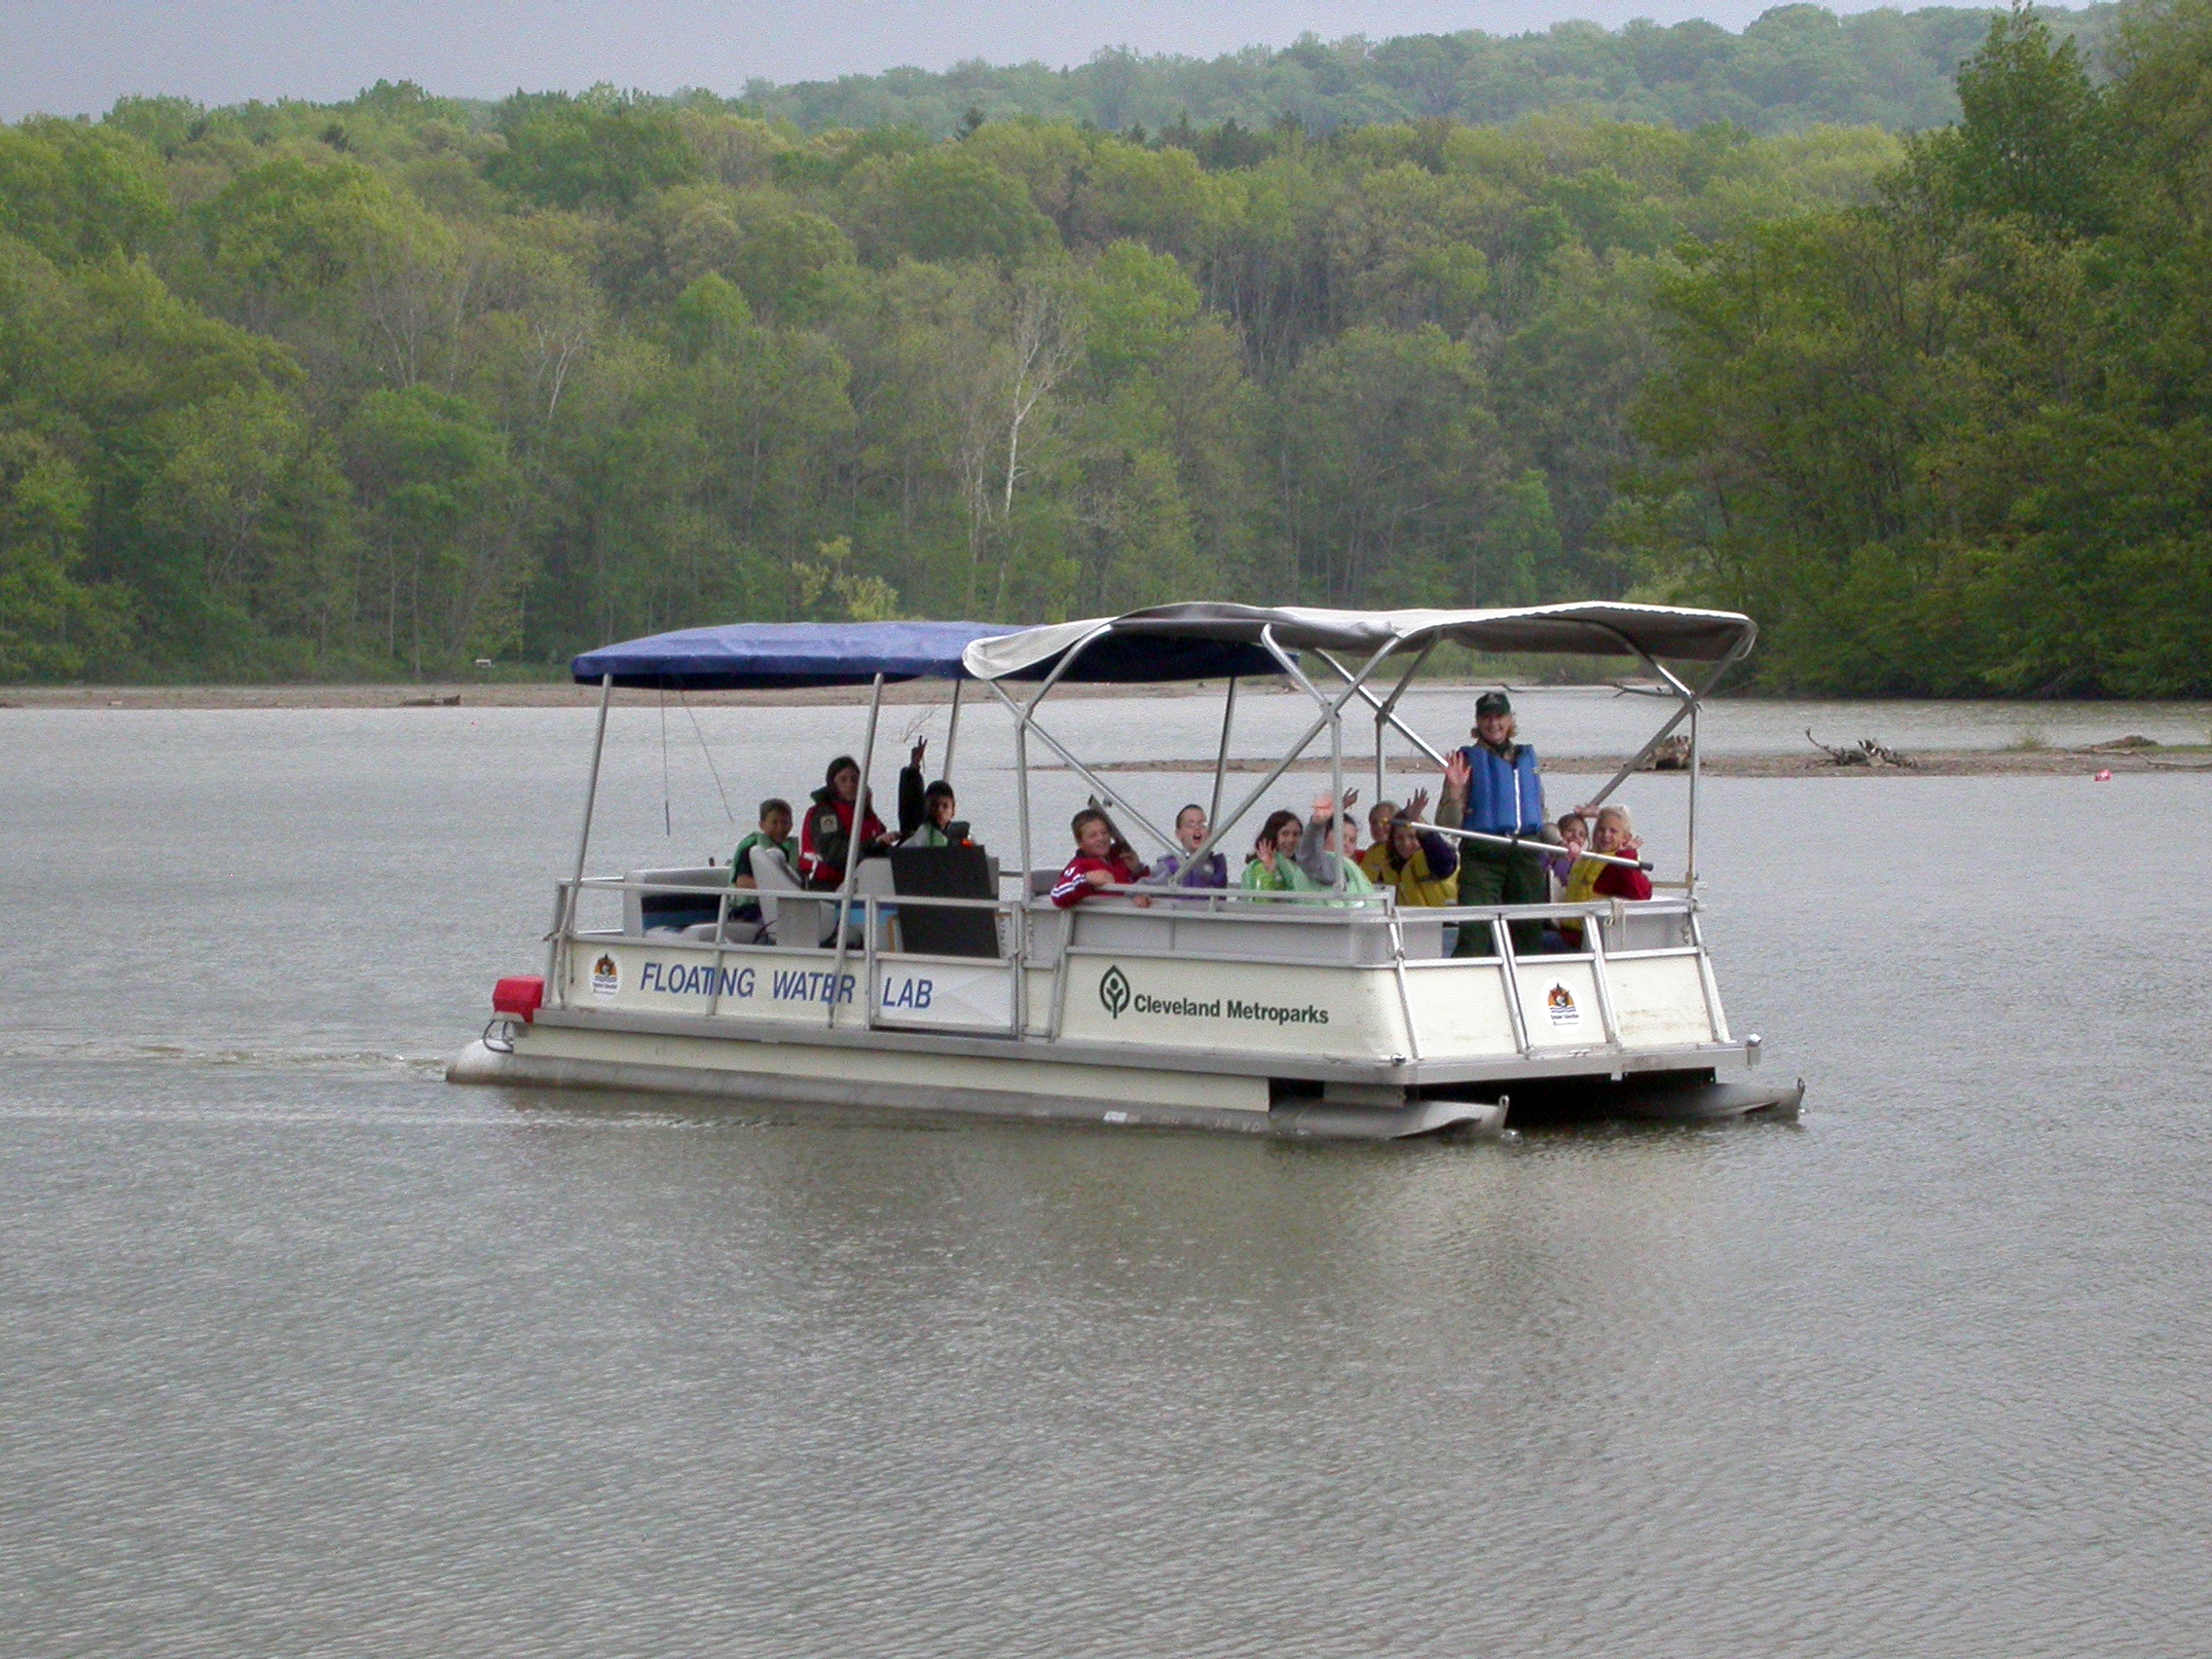 JUMP START YOUR SUMMER FUN THIS MAY IN CLEVELAND METROPARKS